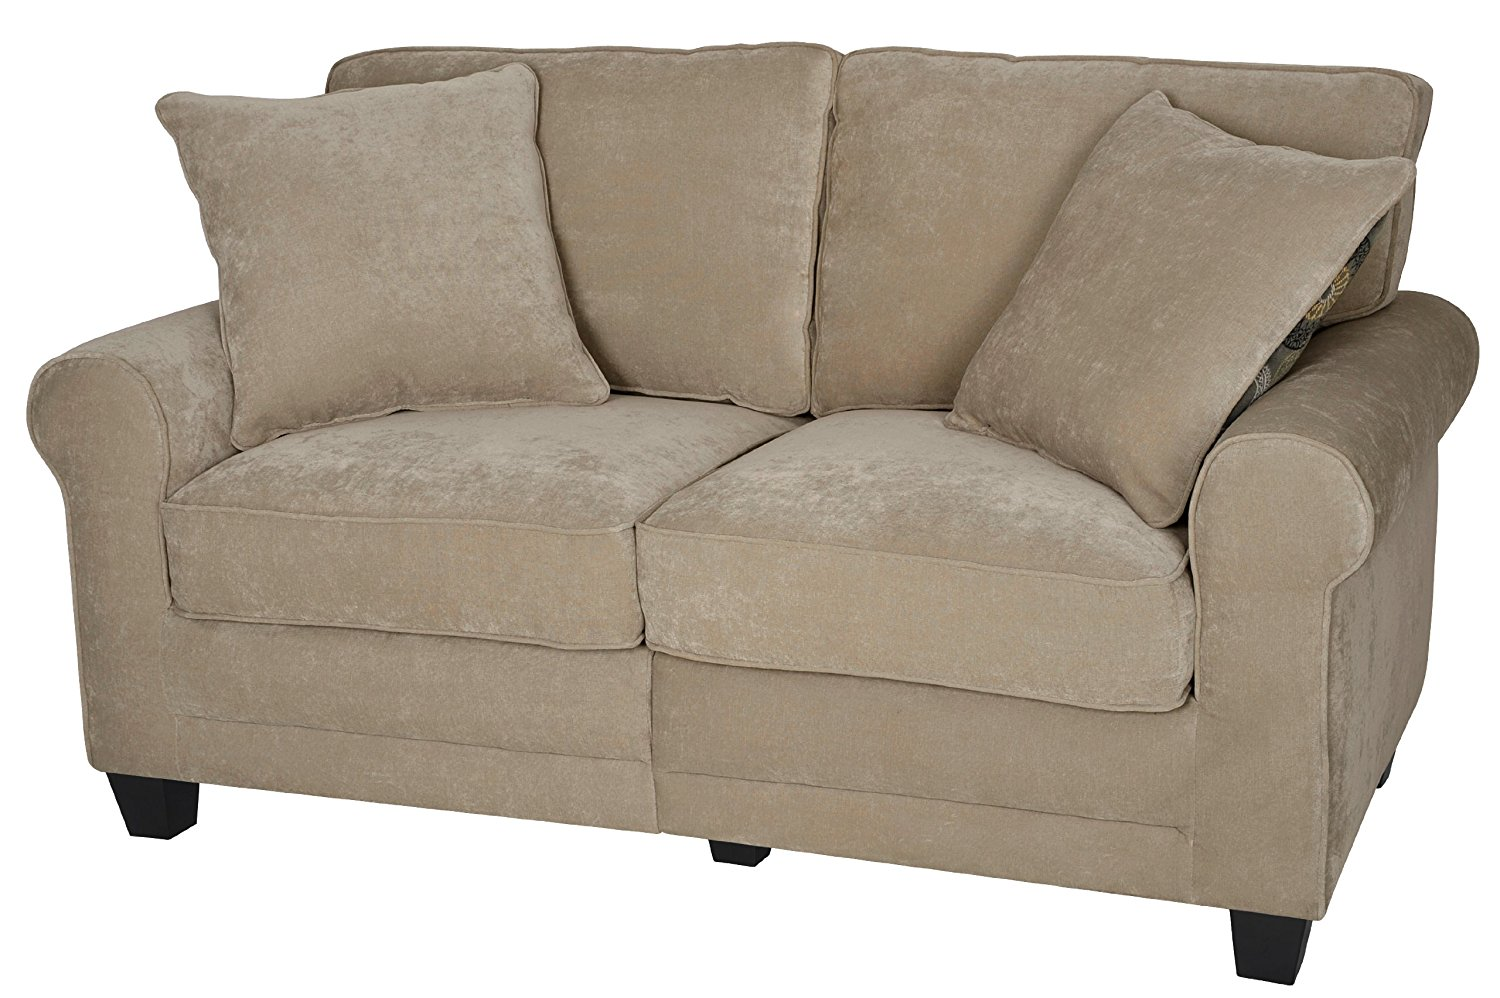 "Serta RTA Copenhagen Collection 61"" Loveseat in Marzipan"